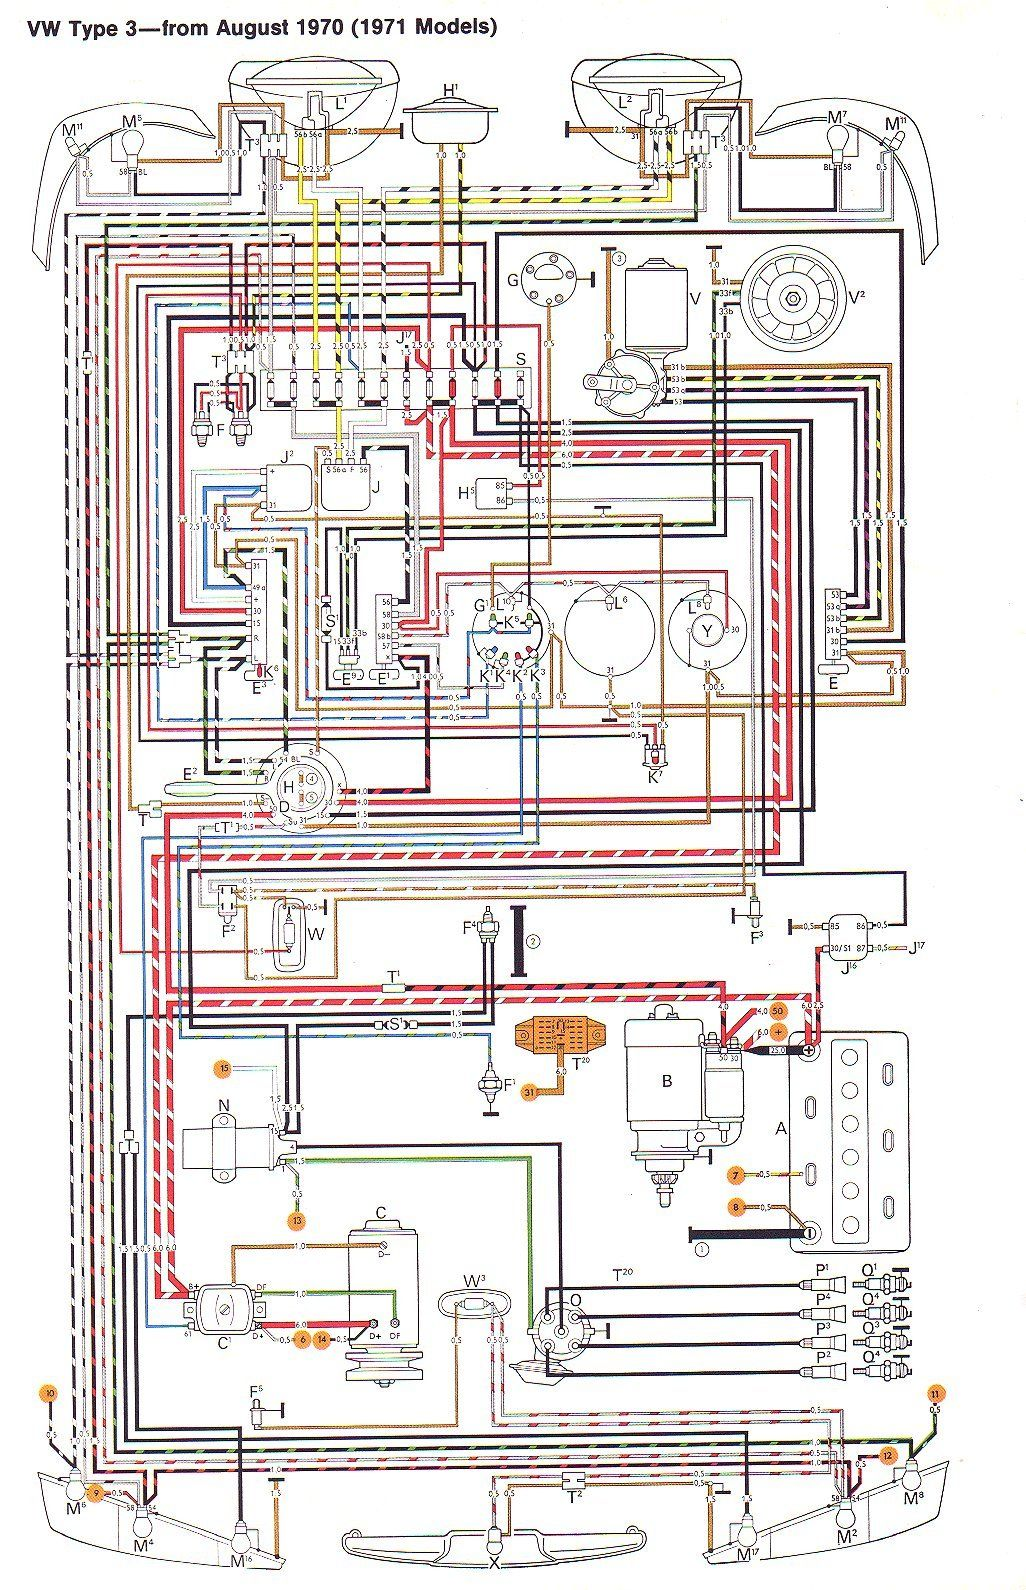 medium resolution of 71 vw t3 wiring diagram van interior diagram type 3 volkswagen vintage